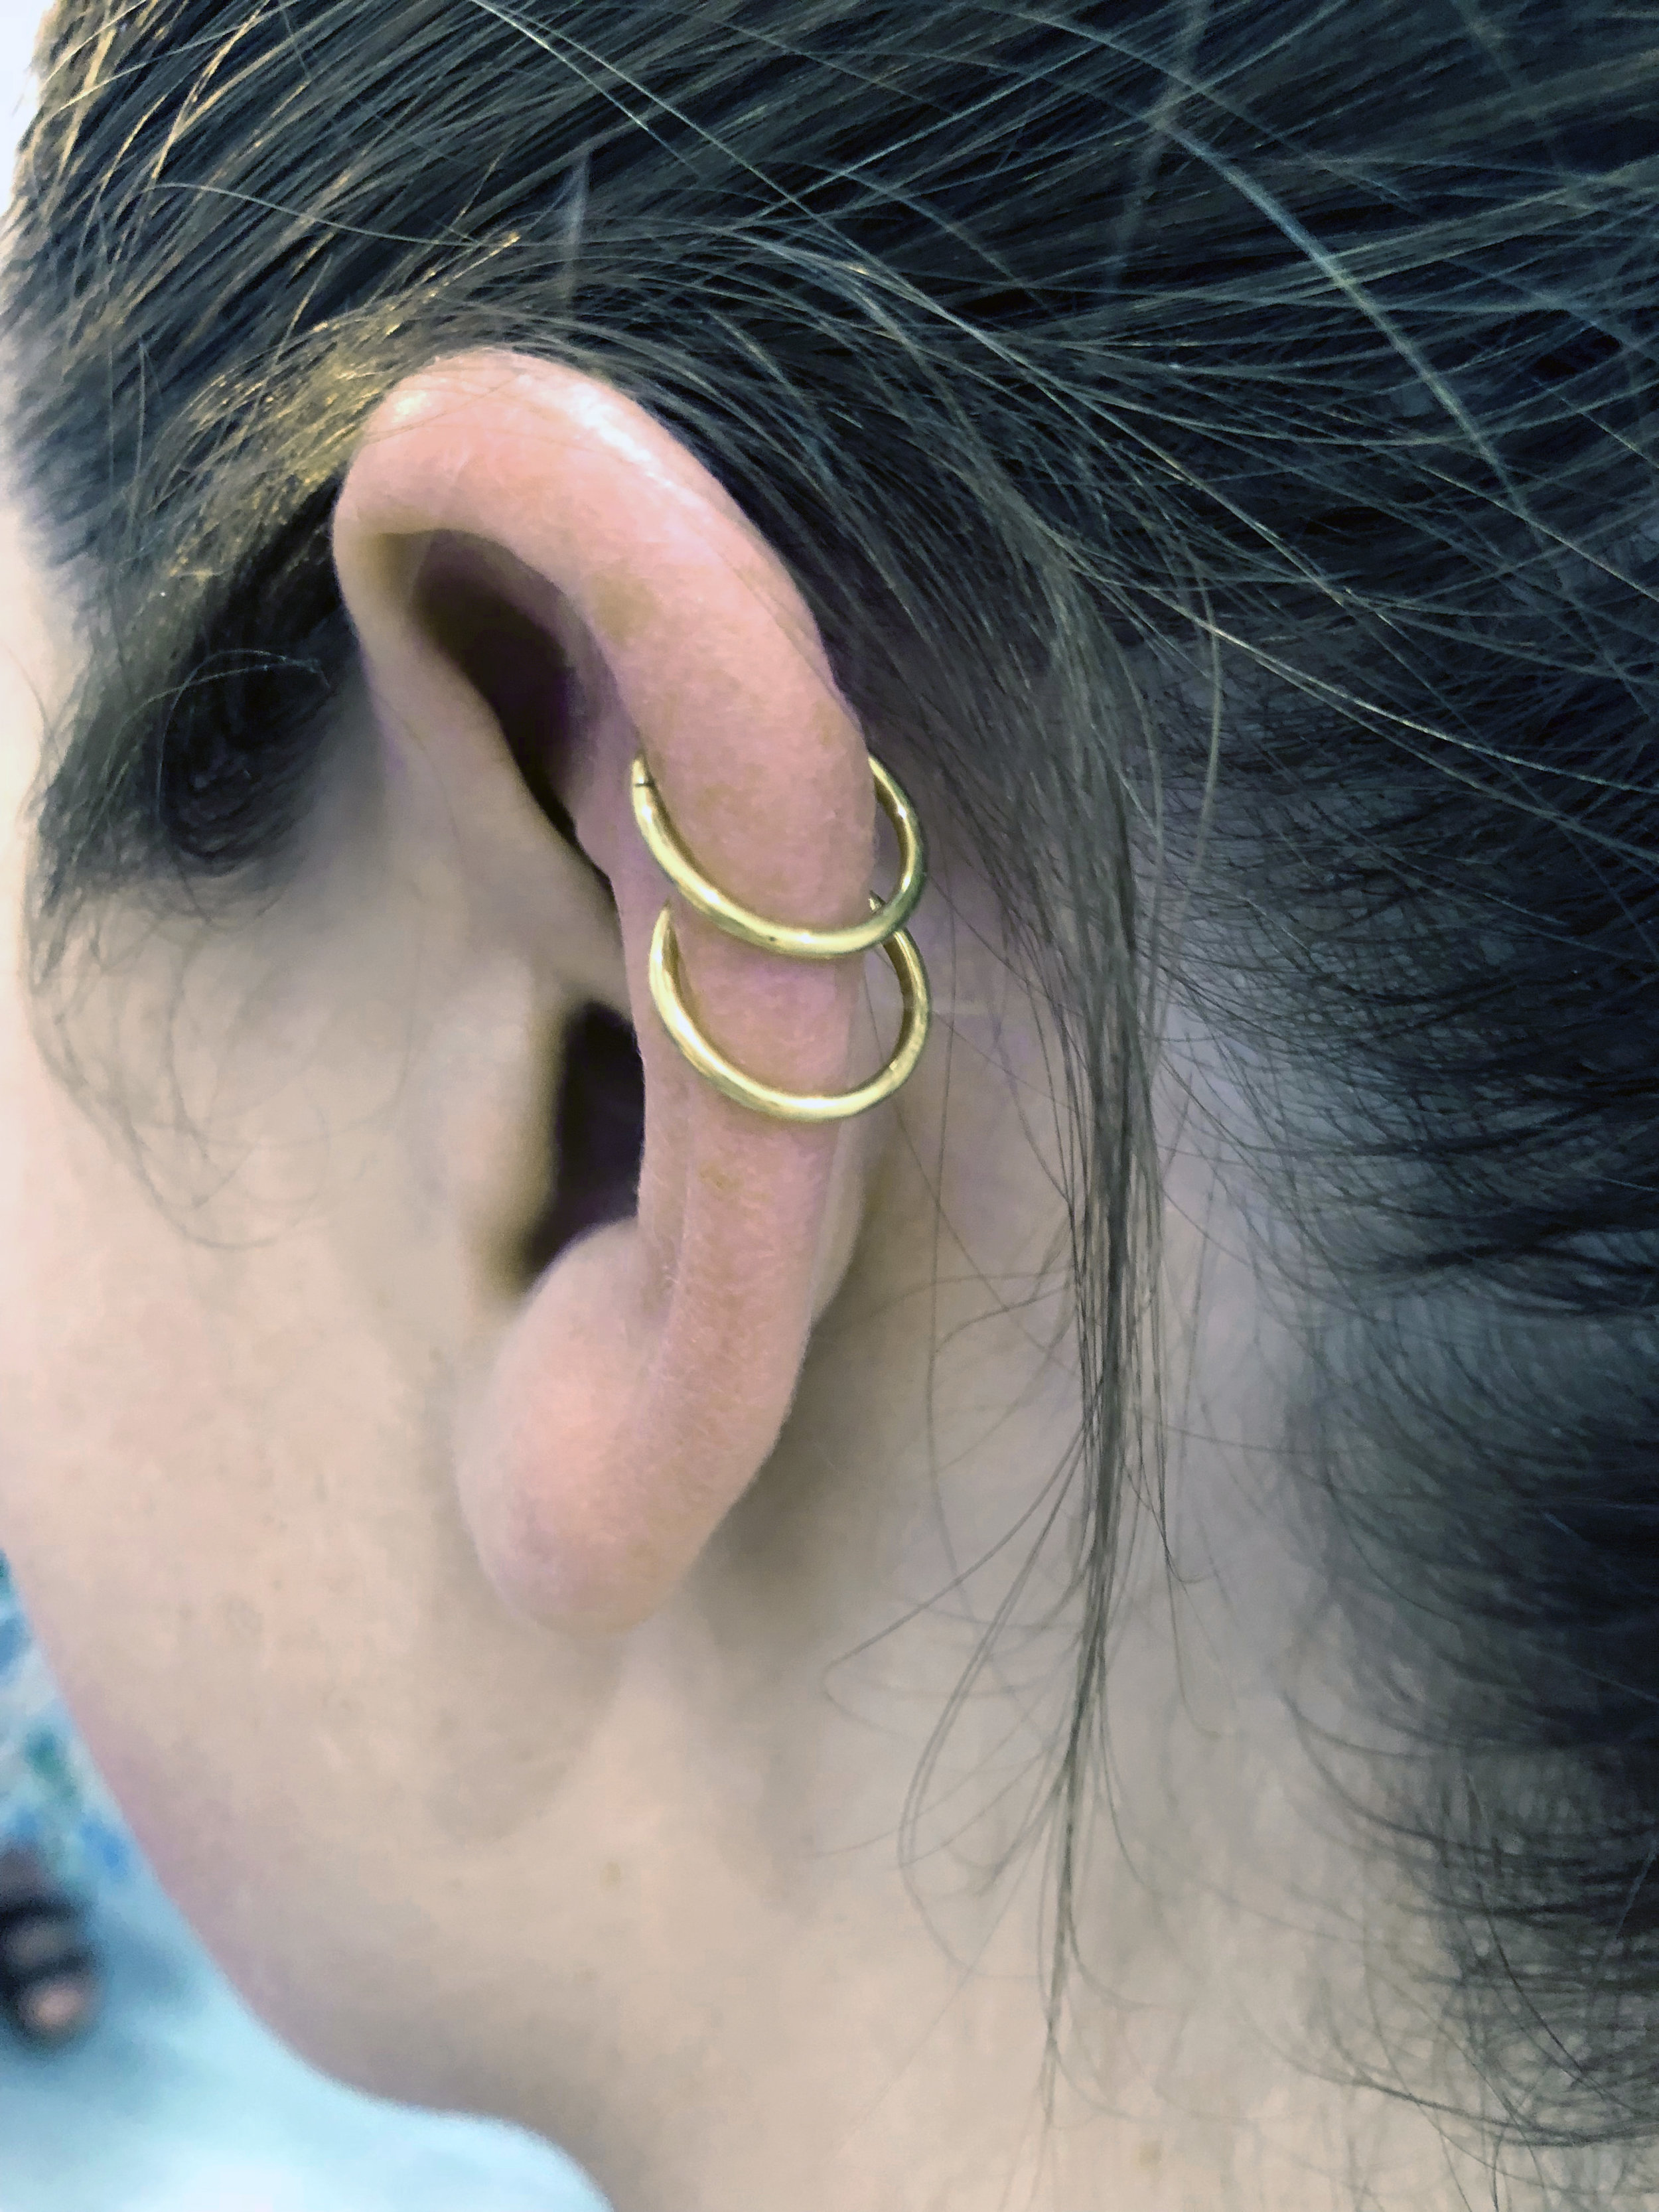 Classic Helix piercing with double gold rings